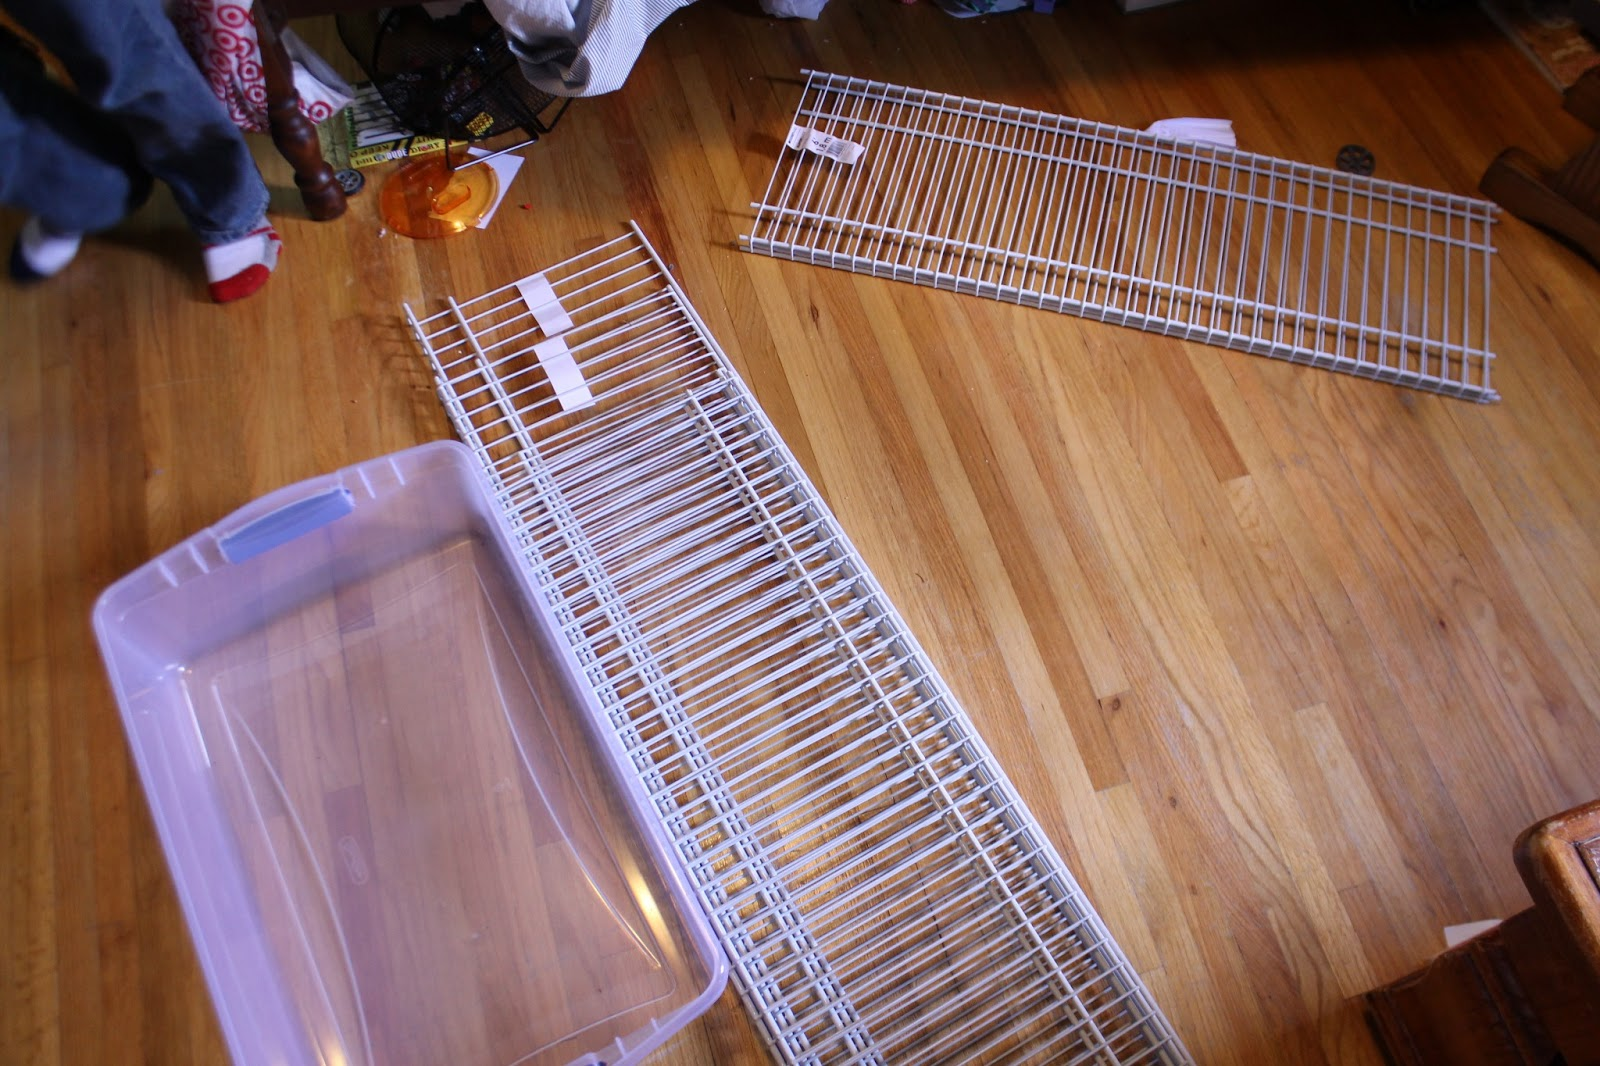 Must Add Fabric Softener Wire Shelving Rat Cage